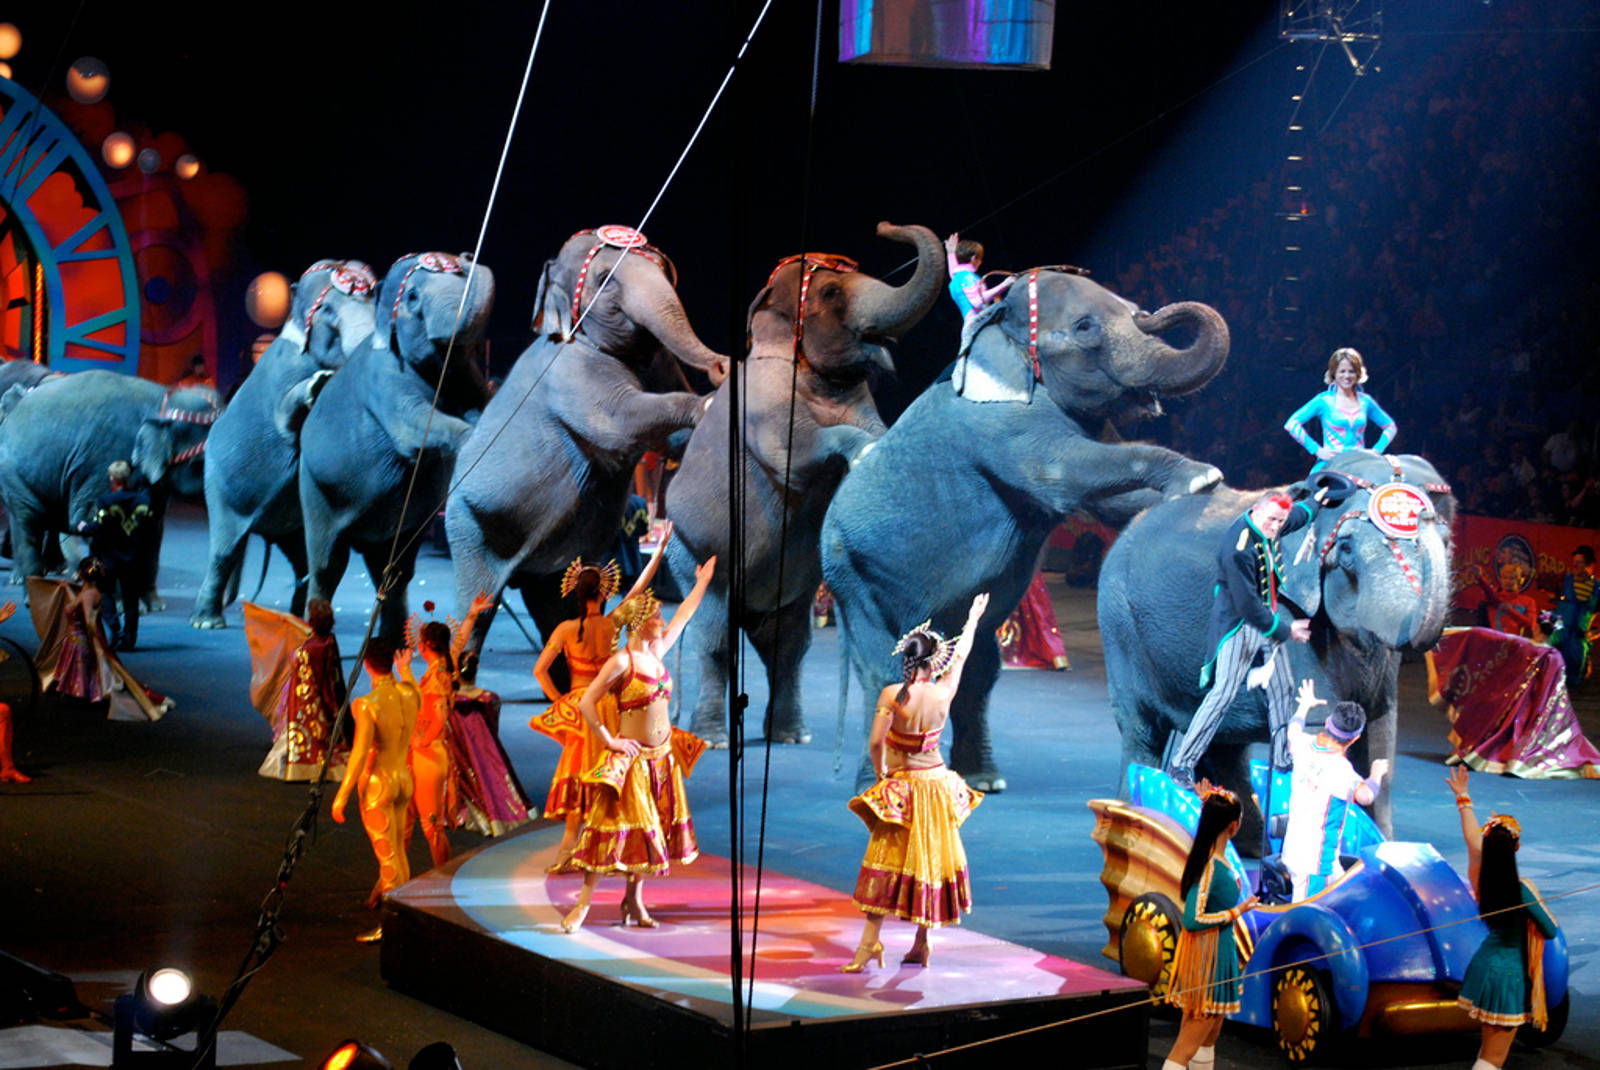 10 Countries That Have Banned Wild Animals in Circuses